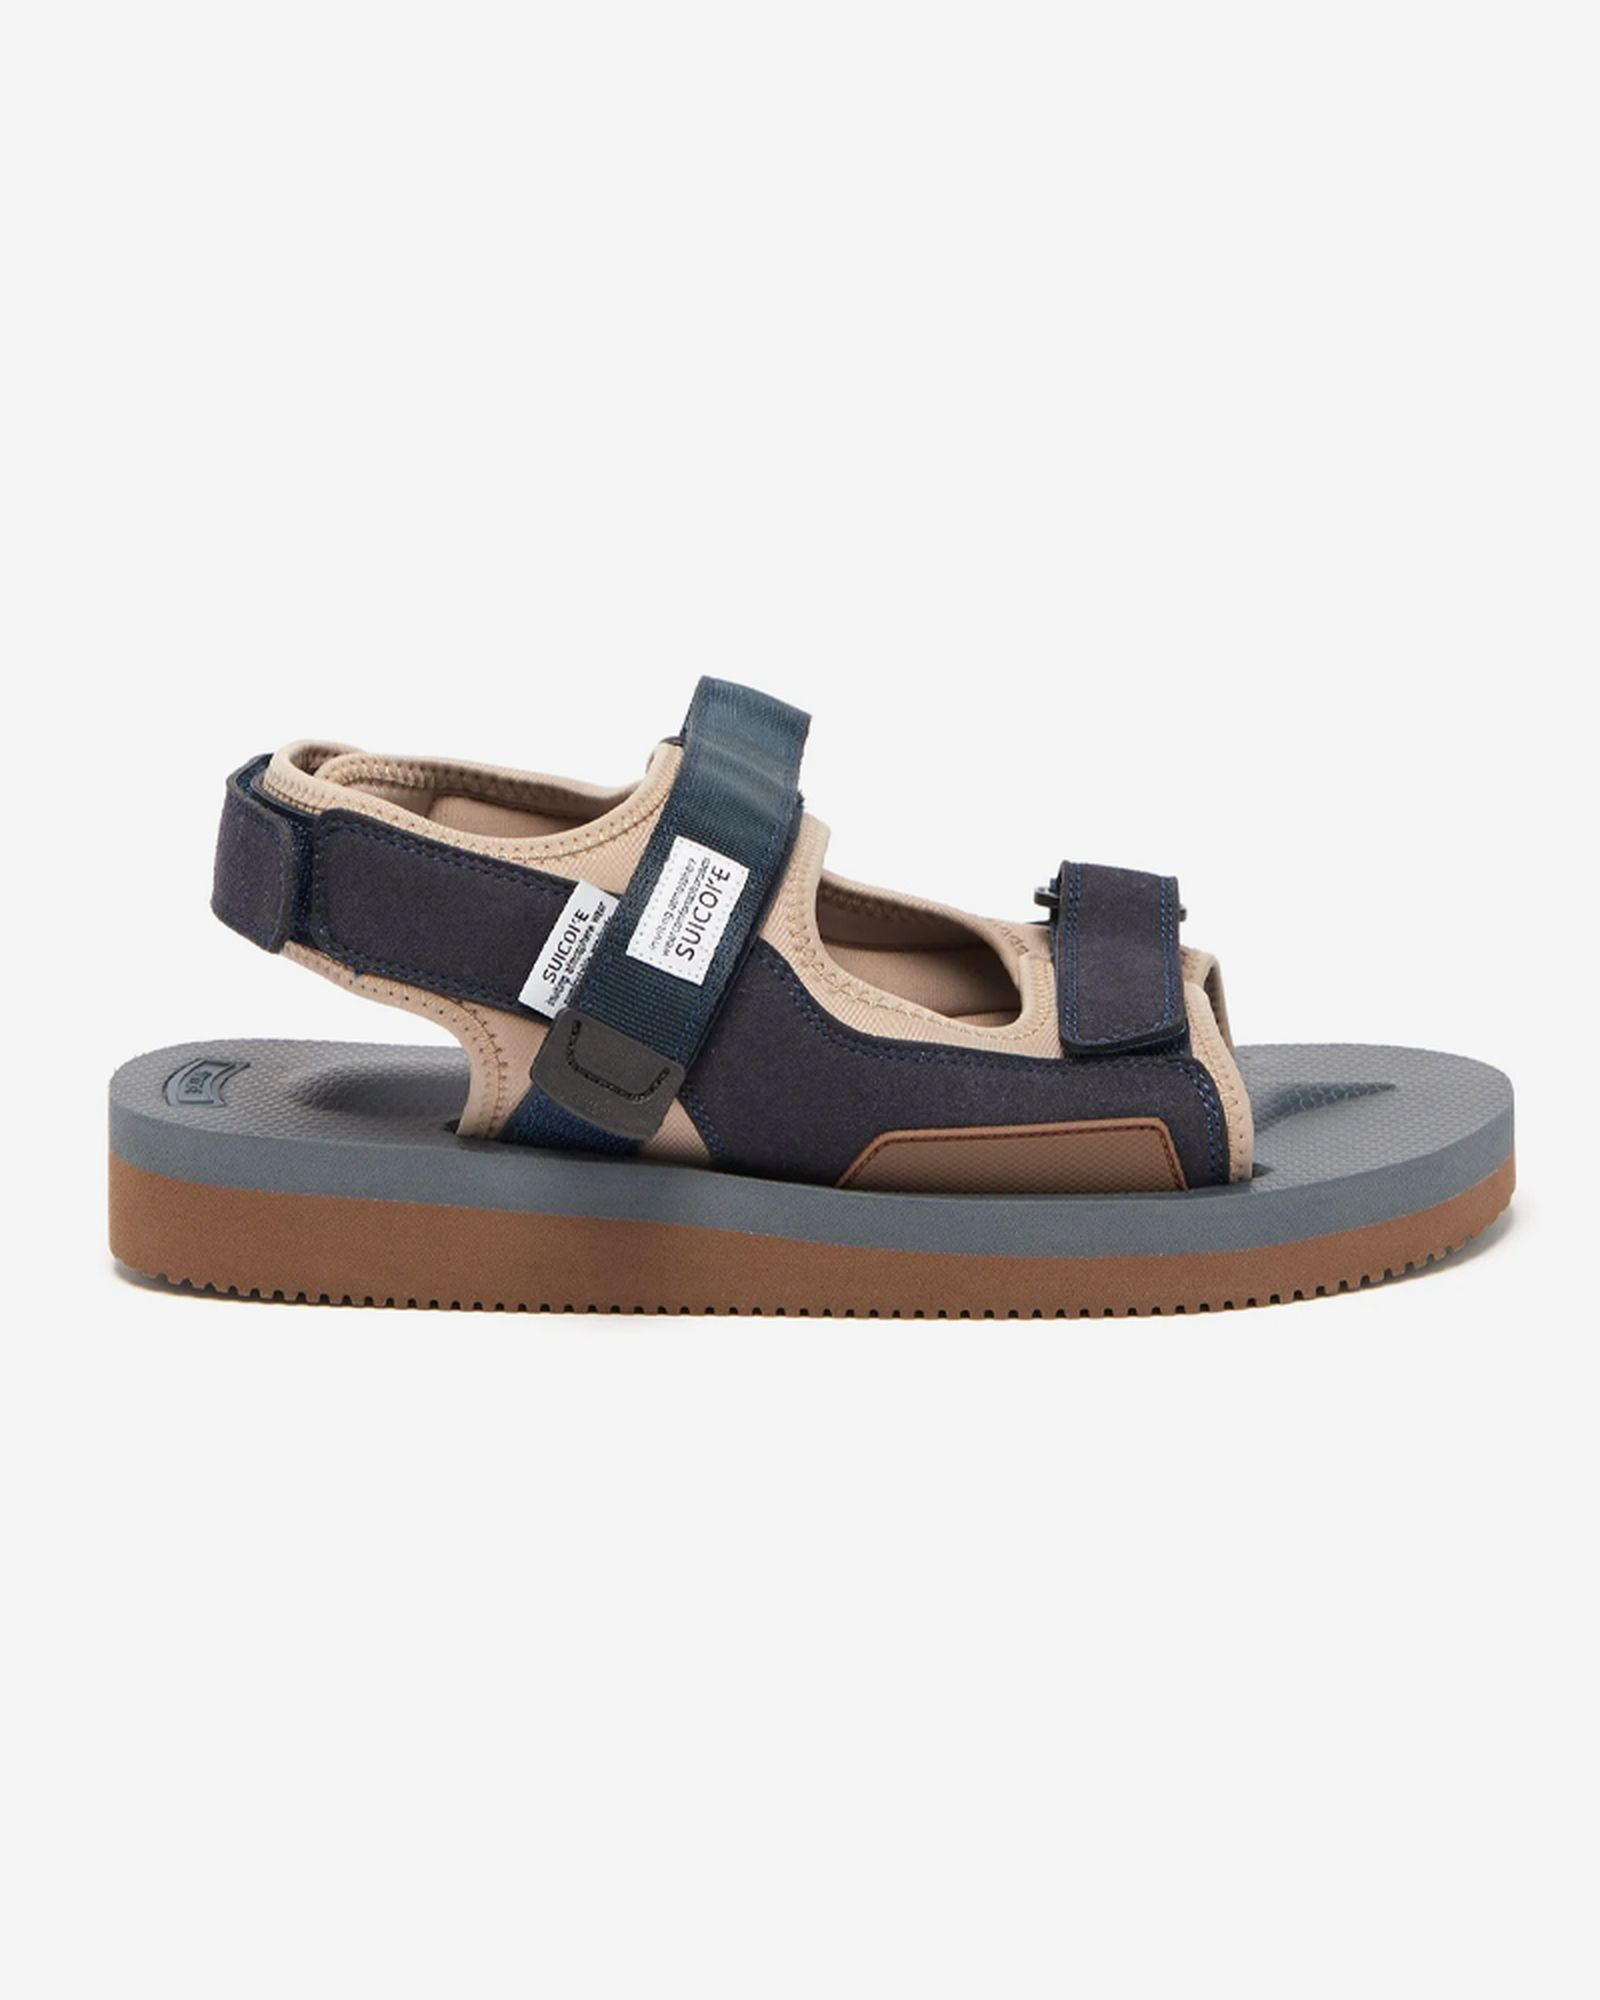 dad-sandals-roundtable-shopping-guide-04